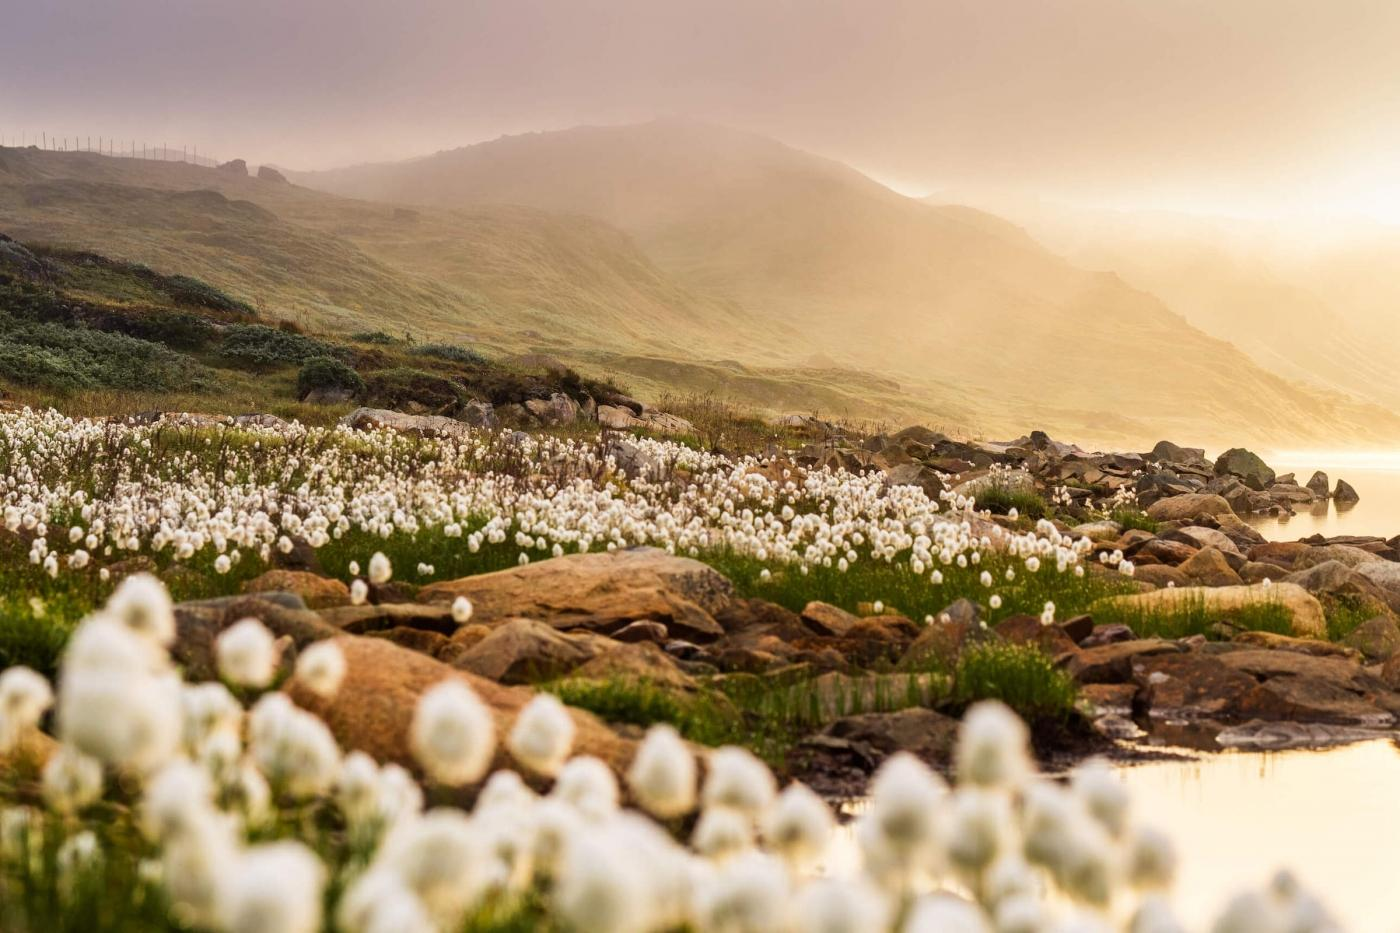 Sun shining on a field of flowers during golden hour.